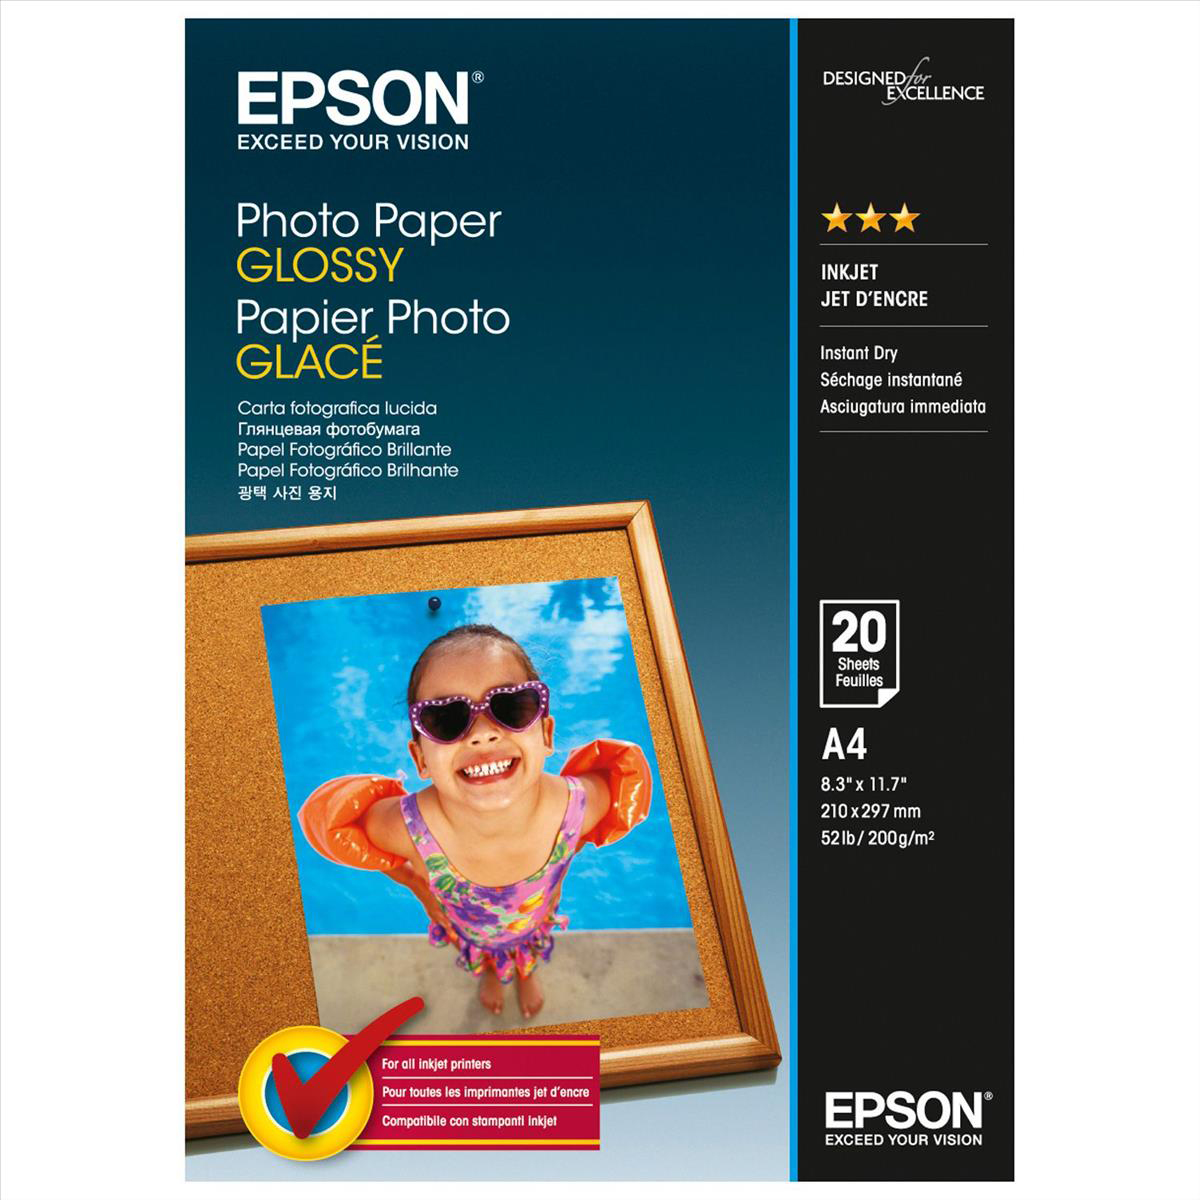 Epson Photo Paper Gloss 200gsm A4 Ref C13S042538 [20 Sheets]